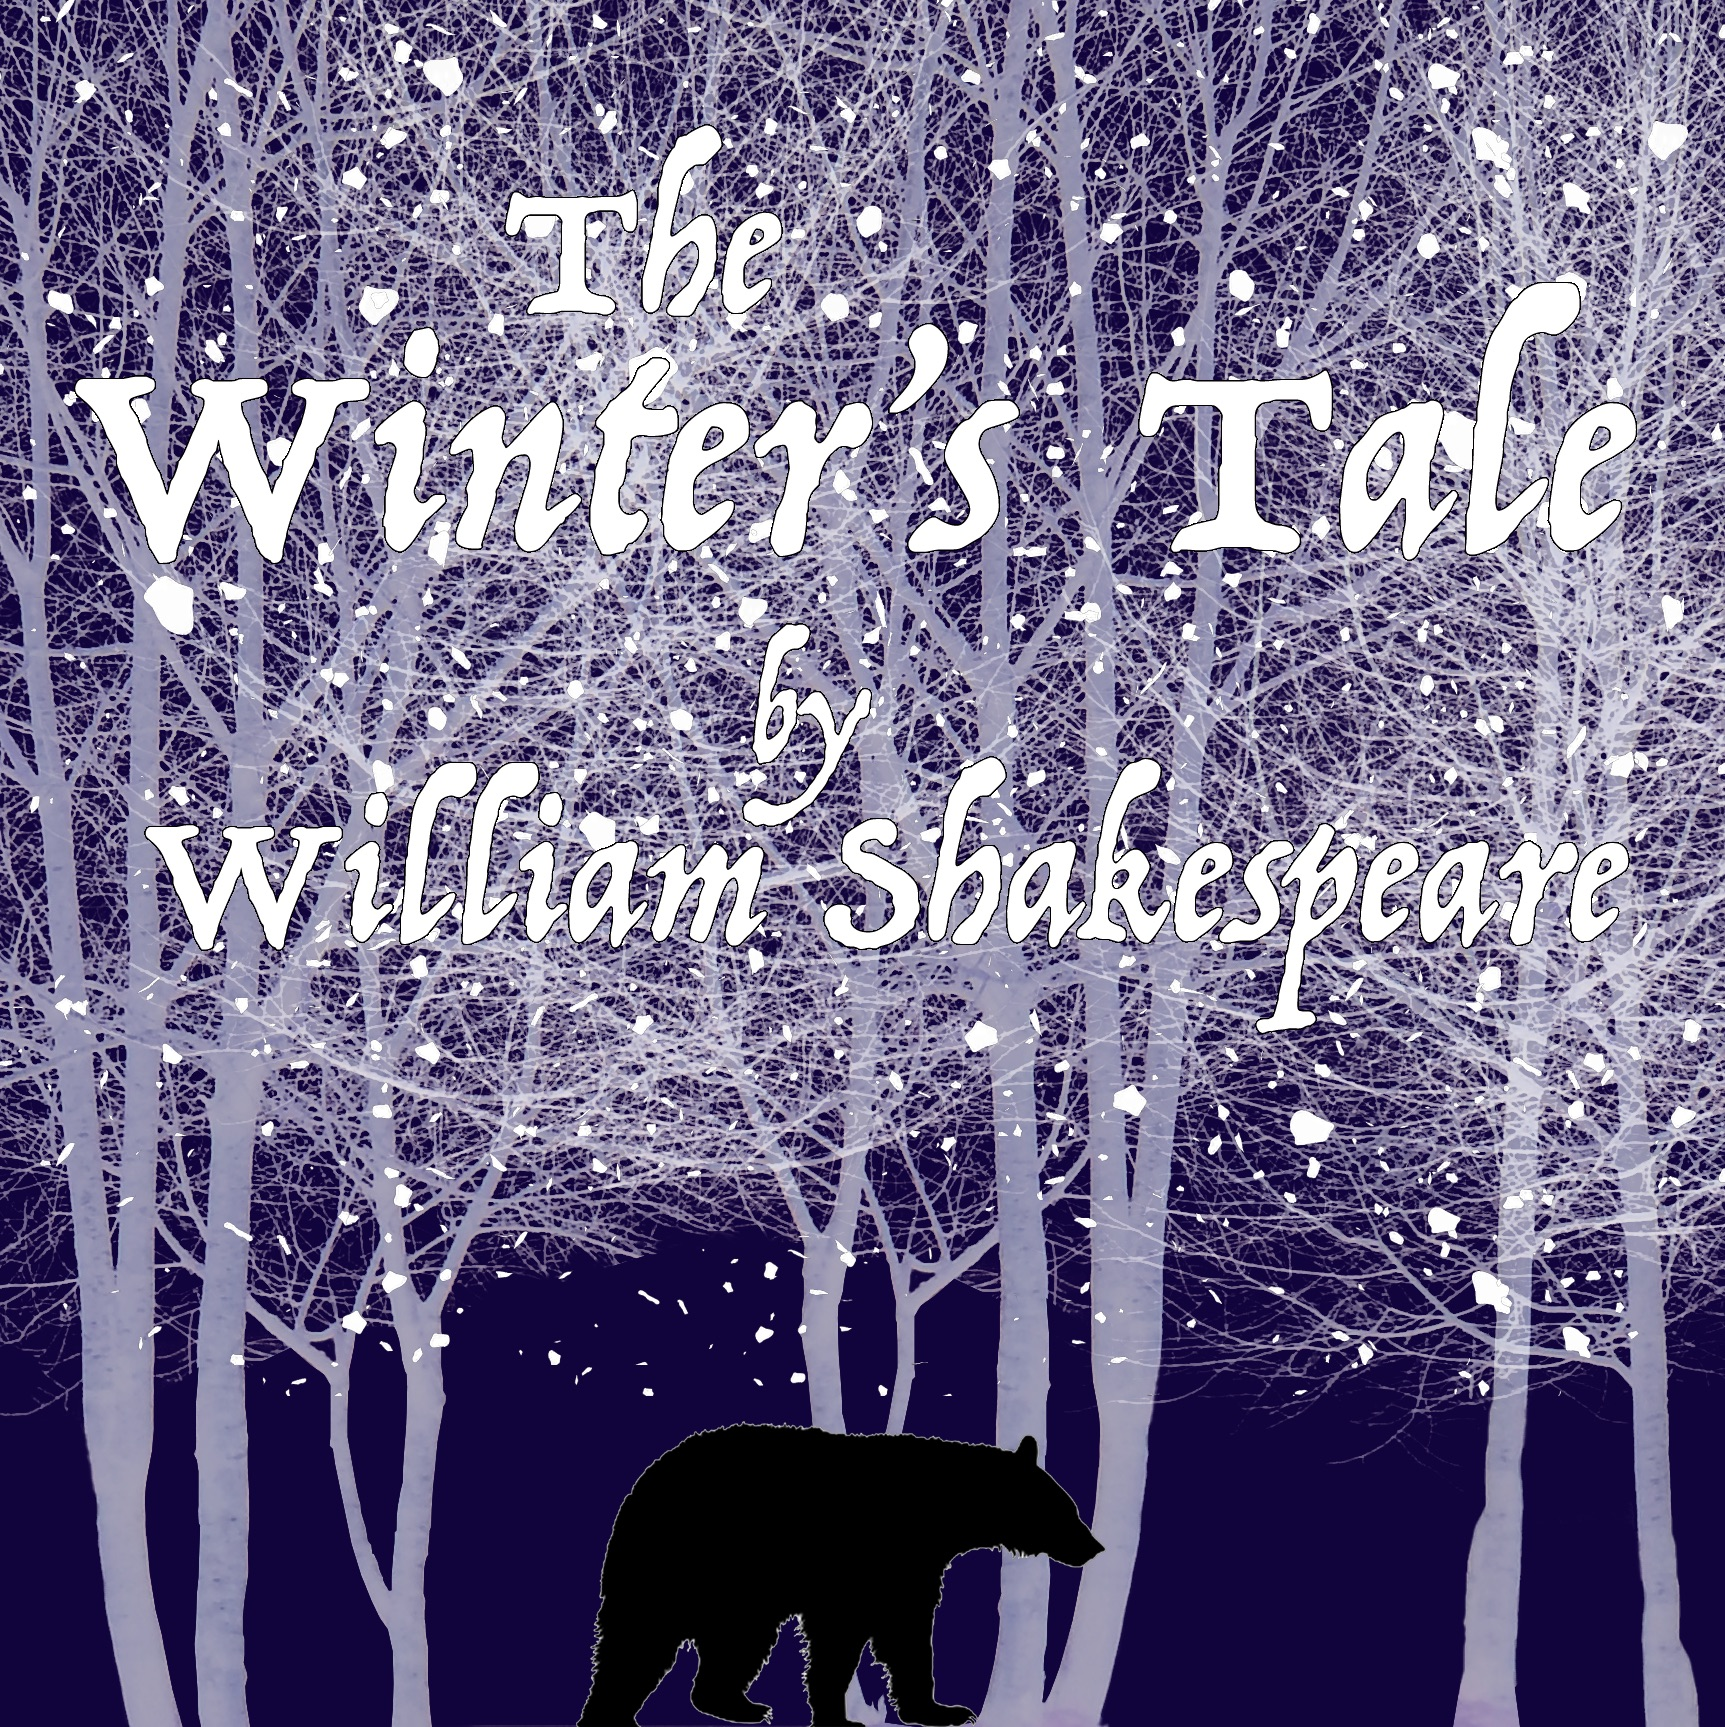 poster for The Winter's Tale featuring birch trees and a bear